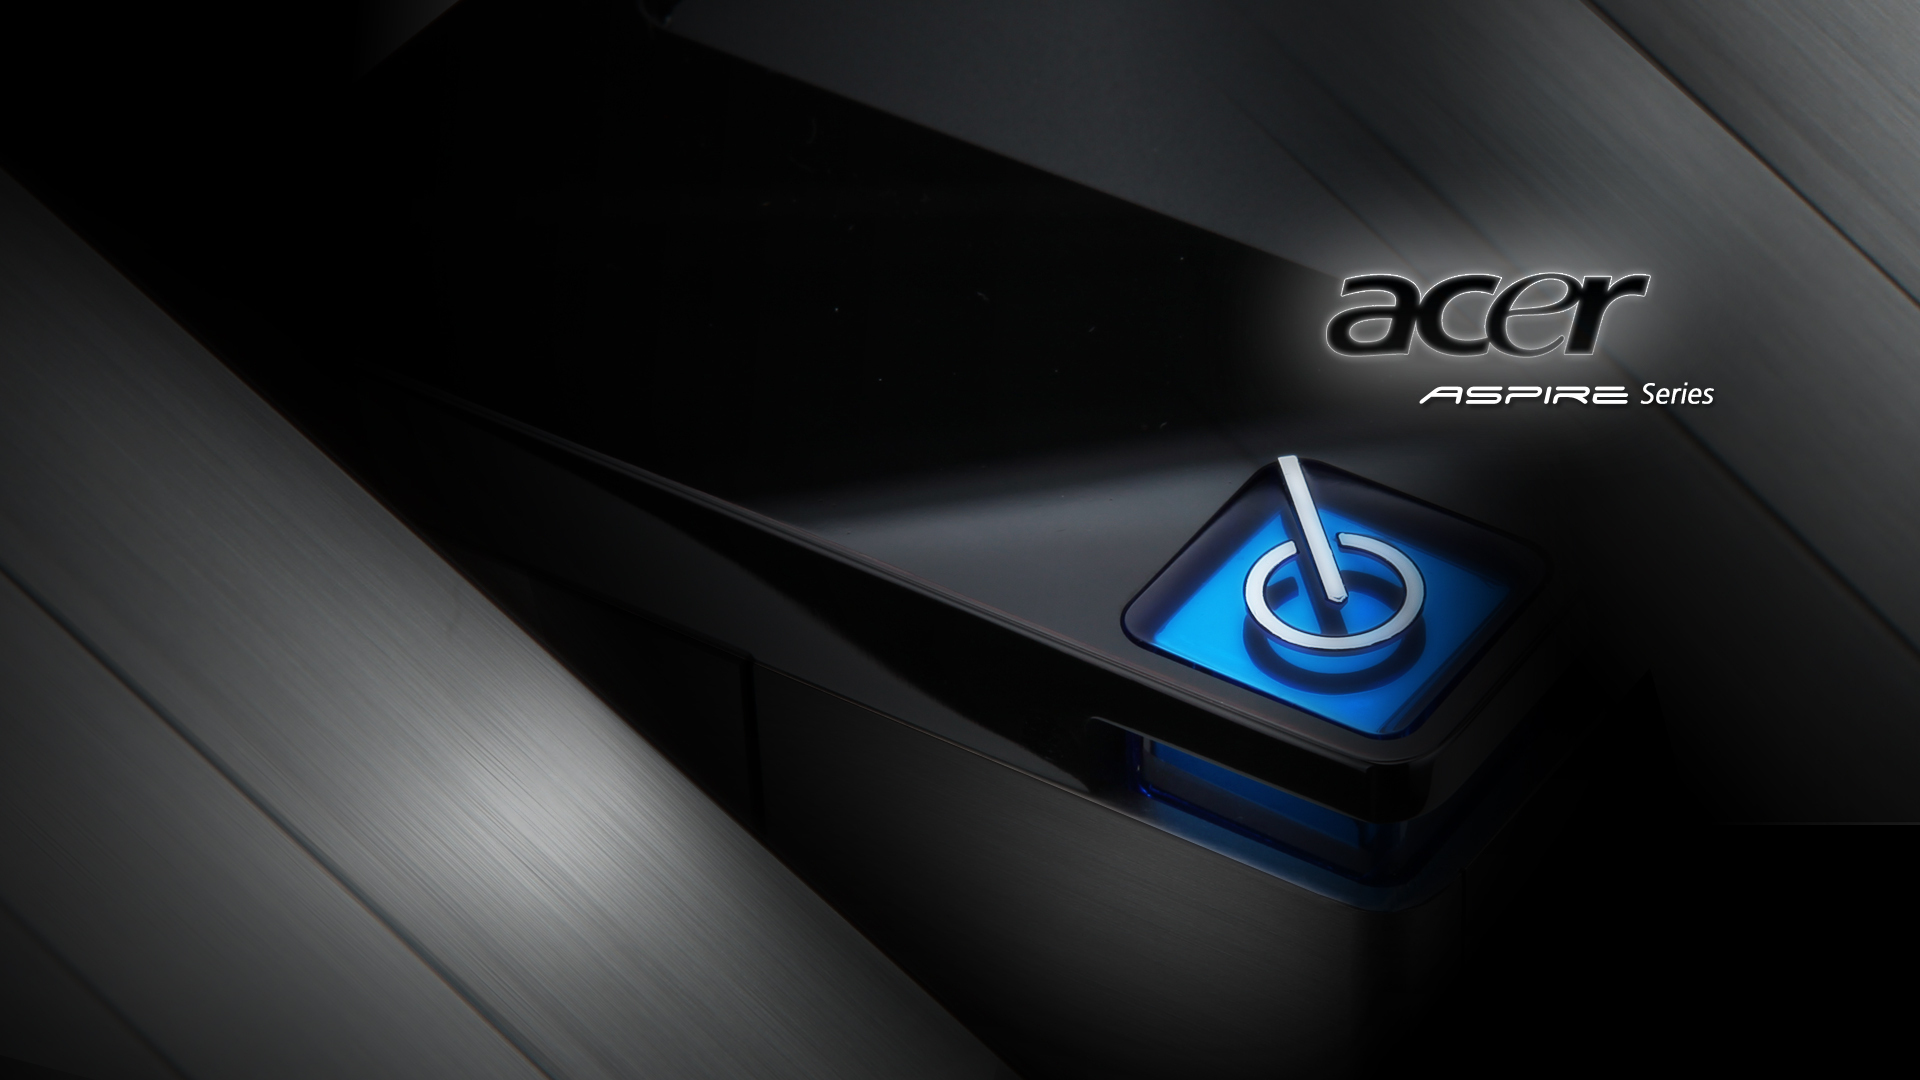 1920x1080 Acer Aspire Blue desktop PC and Mac wallpaper 1920x1080